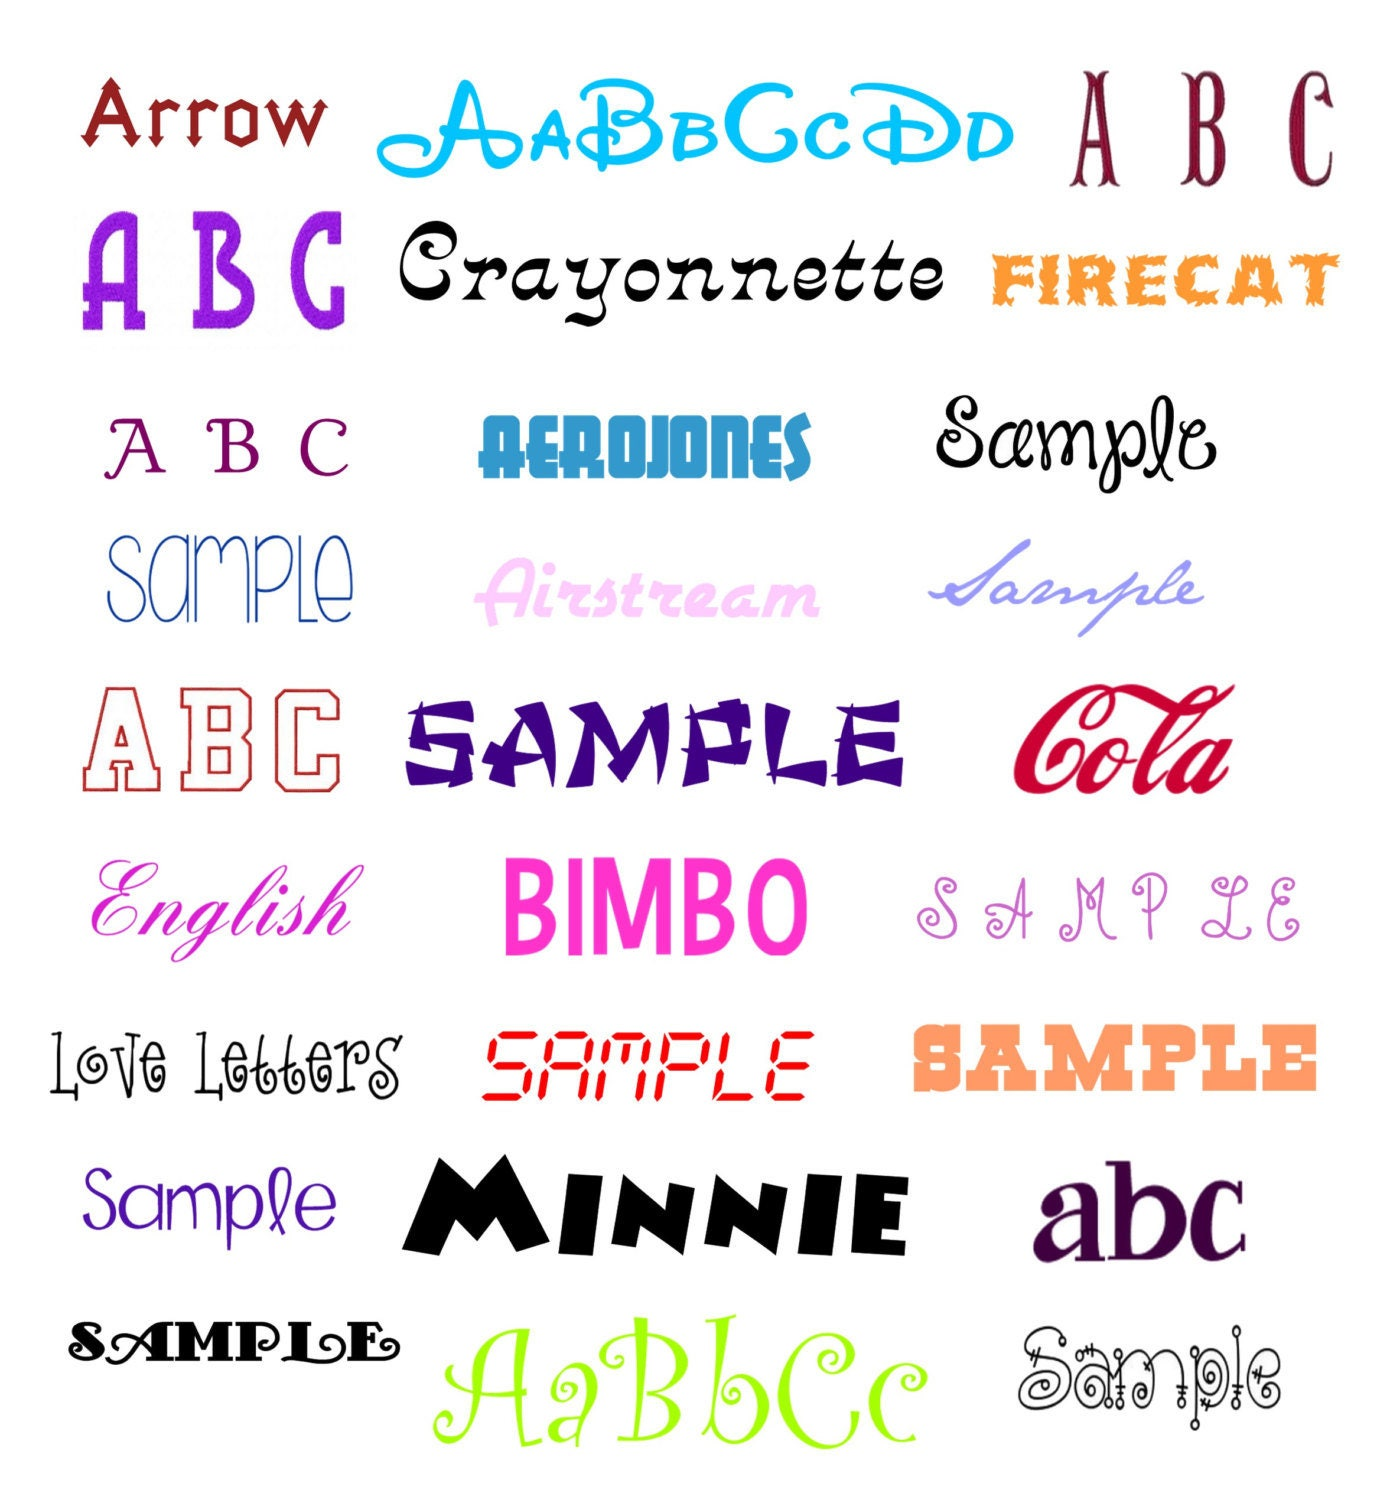 Download FONT ALPHABET LETTERS vp3 designs pack for embroidery